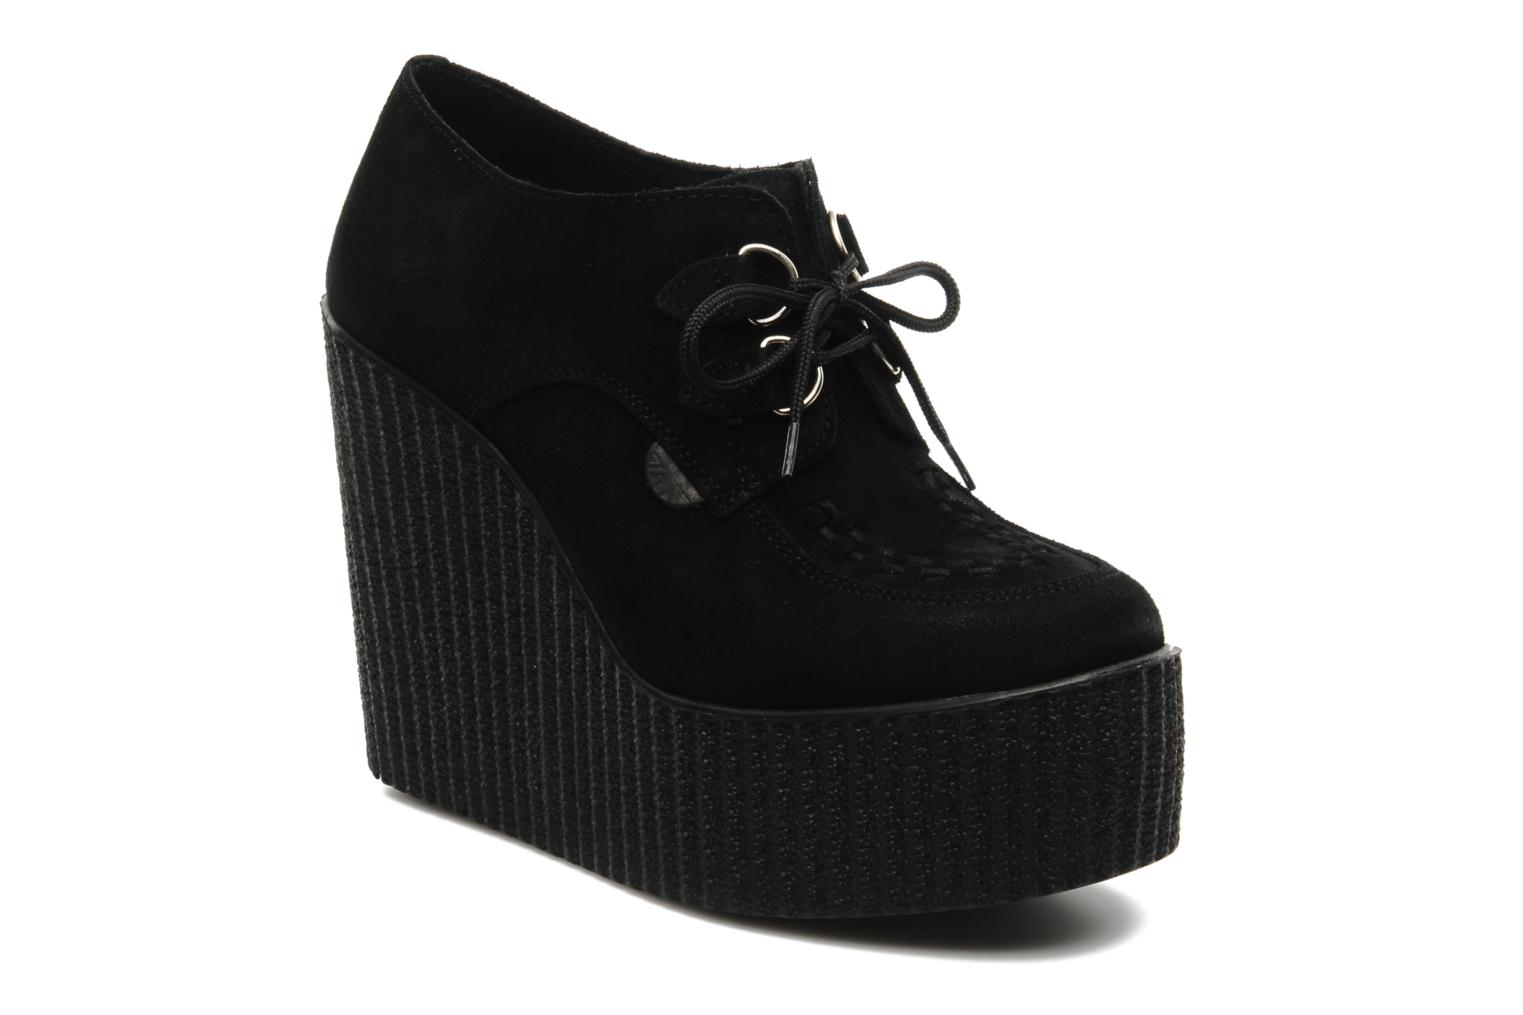 WULFRUN WEDGE Black Suede